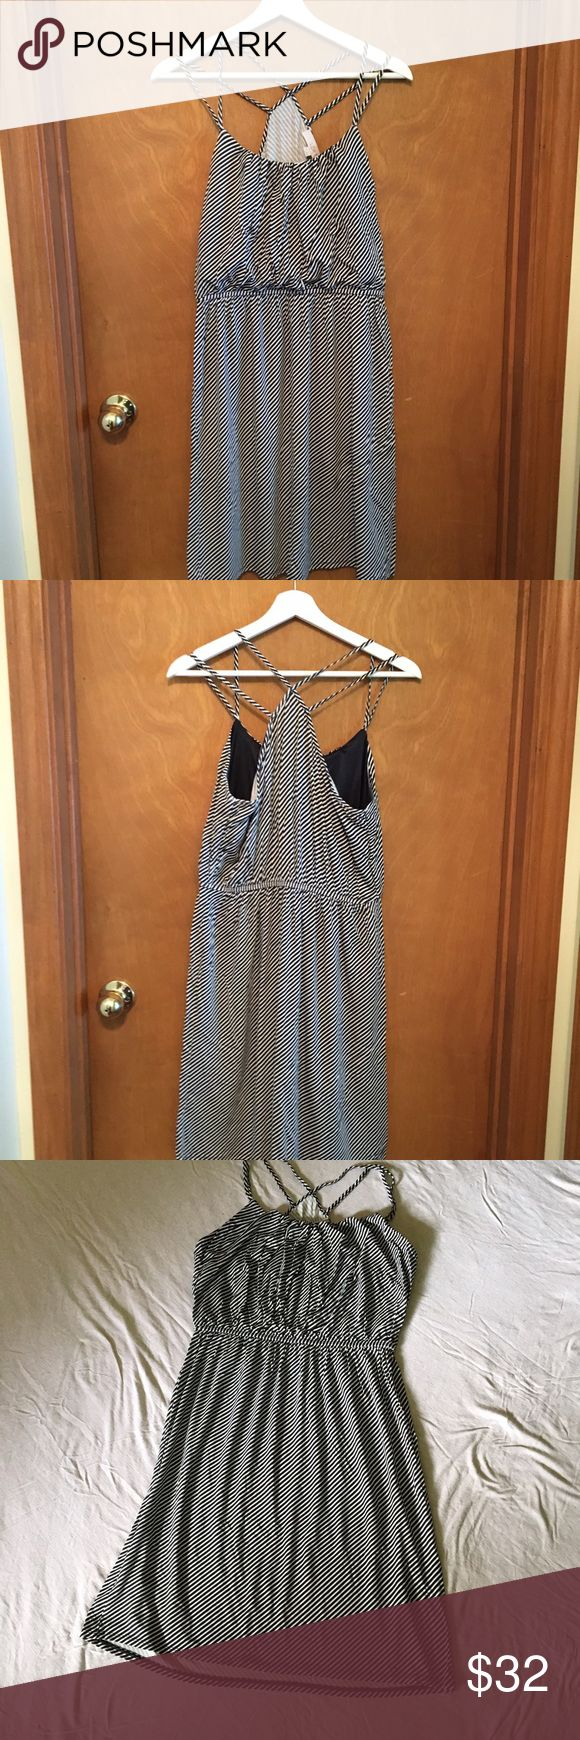 Strappy petite sundress Navy and white petite dress. Elasticized waist. Chest is lined. NWOT. Gathering at neckline creates a blouson effect. Make an offer!!! 30% off bundles! LOFT Dresses